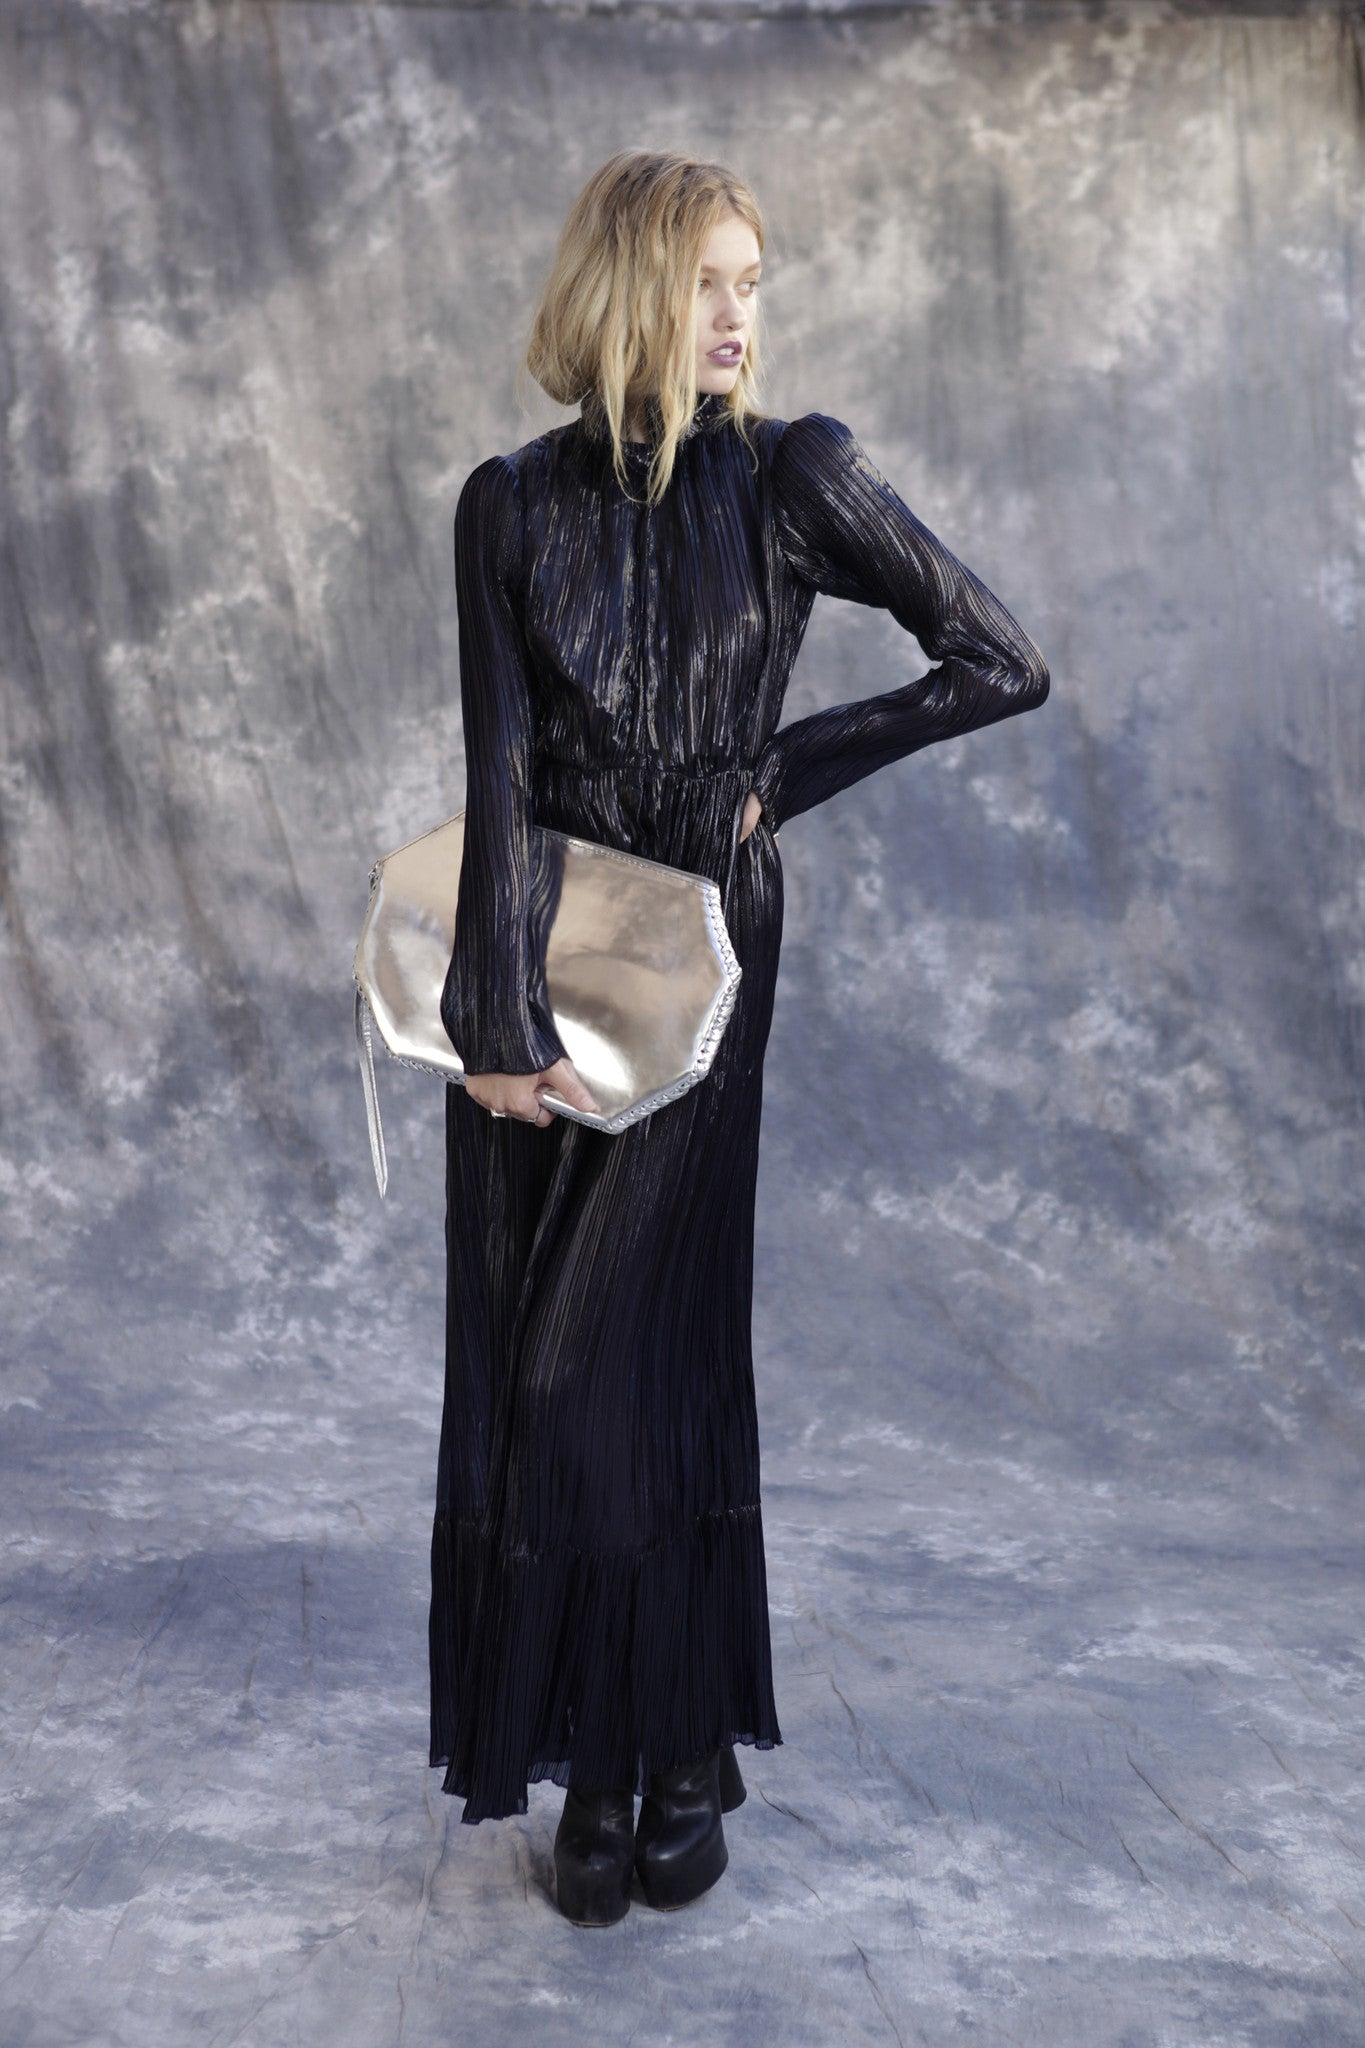 Maggie Laine IMG model Sheer Sparkle Midnight Navy Blue Dress Long Sleeves High Collar Victorian Edwardian Future lines pleated pleats silk Wendy Nichol Clothing Designer SS17 Ready to Wear Fashion Runway Show Death Valley Desert Mirror Patent Metallic Silver Emerald shape Clutch leather bag Handmade in NYC